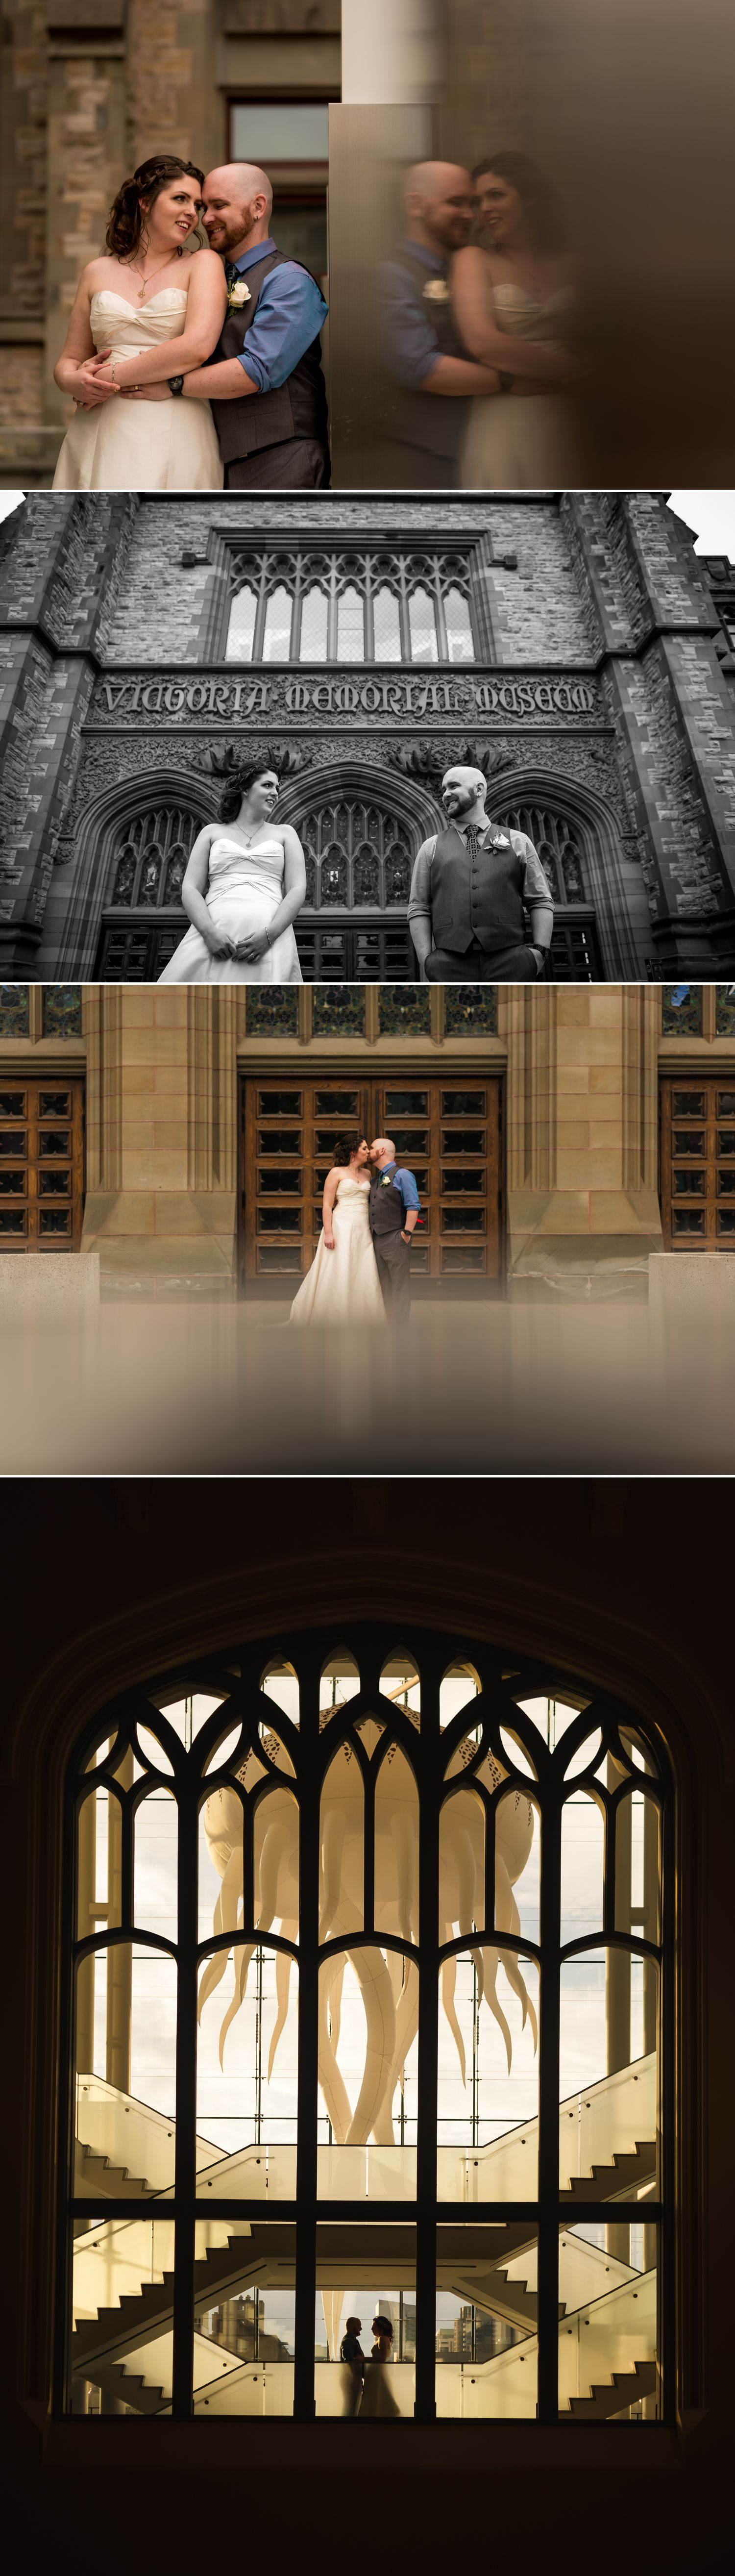 Couples portraits of the bride and groom taken at the Museum of Nature in downtown Ottawa